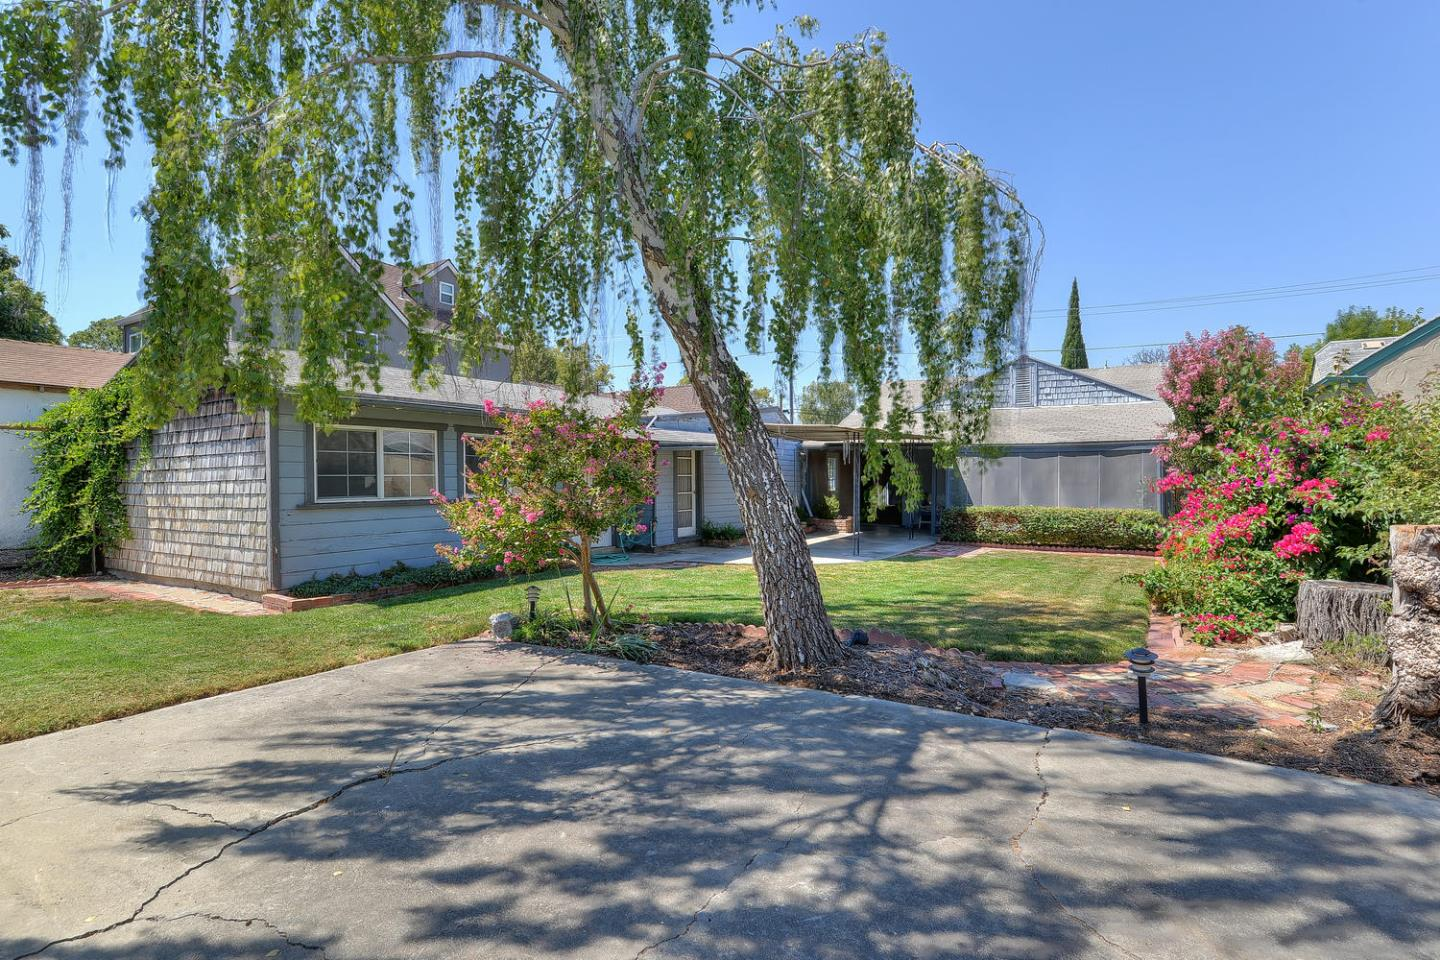 Additional photo for property listing at 1074 Pine Avenue  San Jose, California 95125 United States